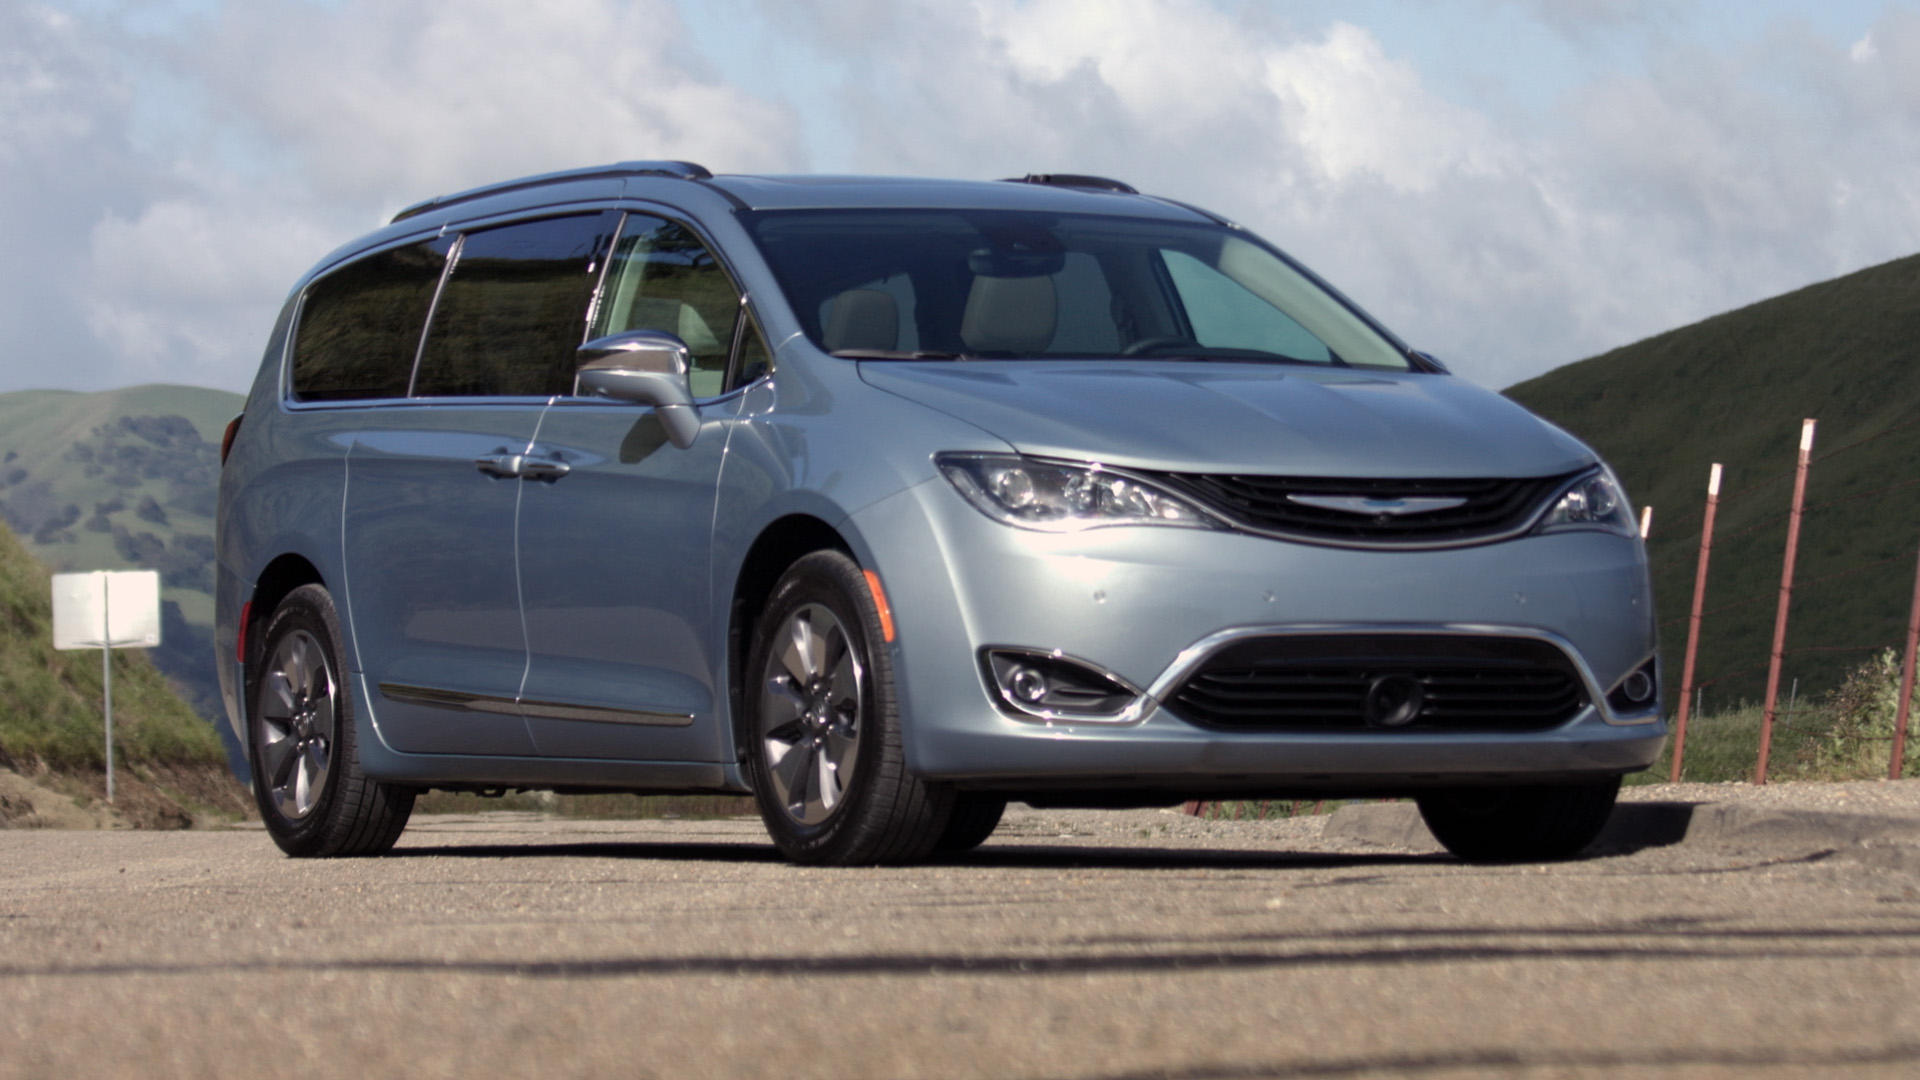 Video: 2017 Chrysler Pacifica plug-in hybrid